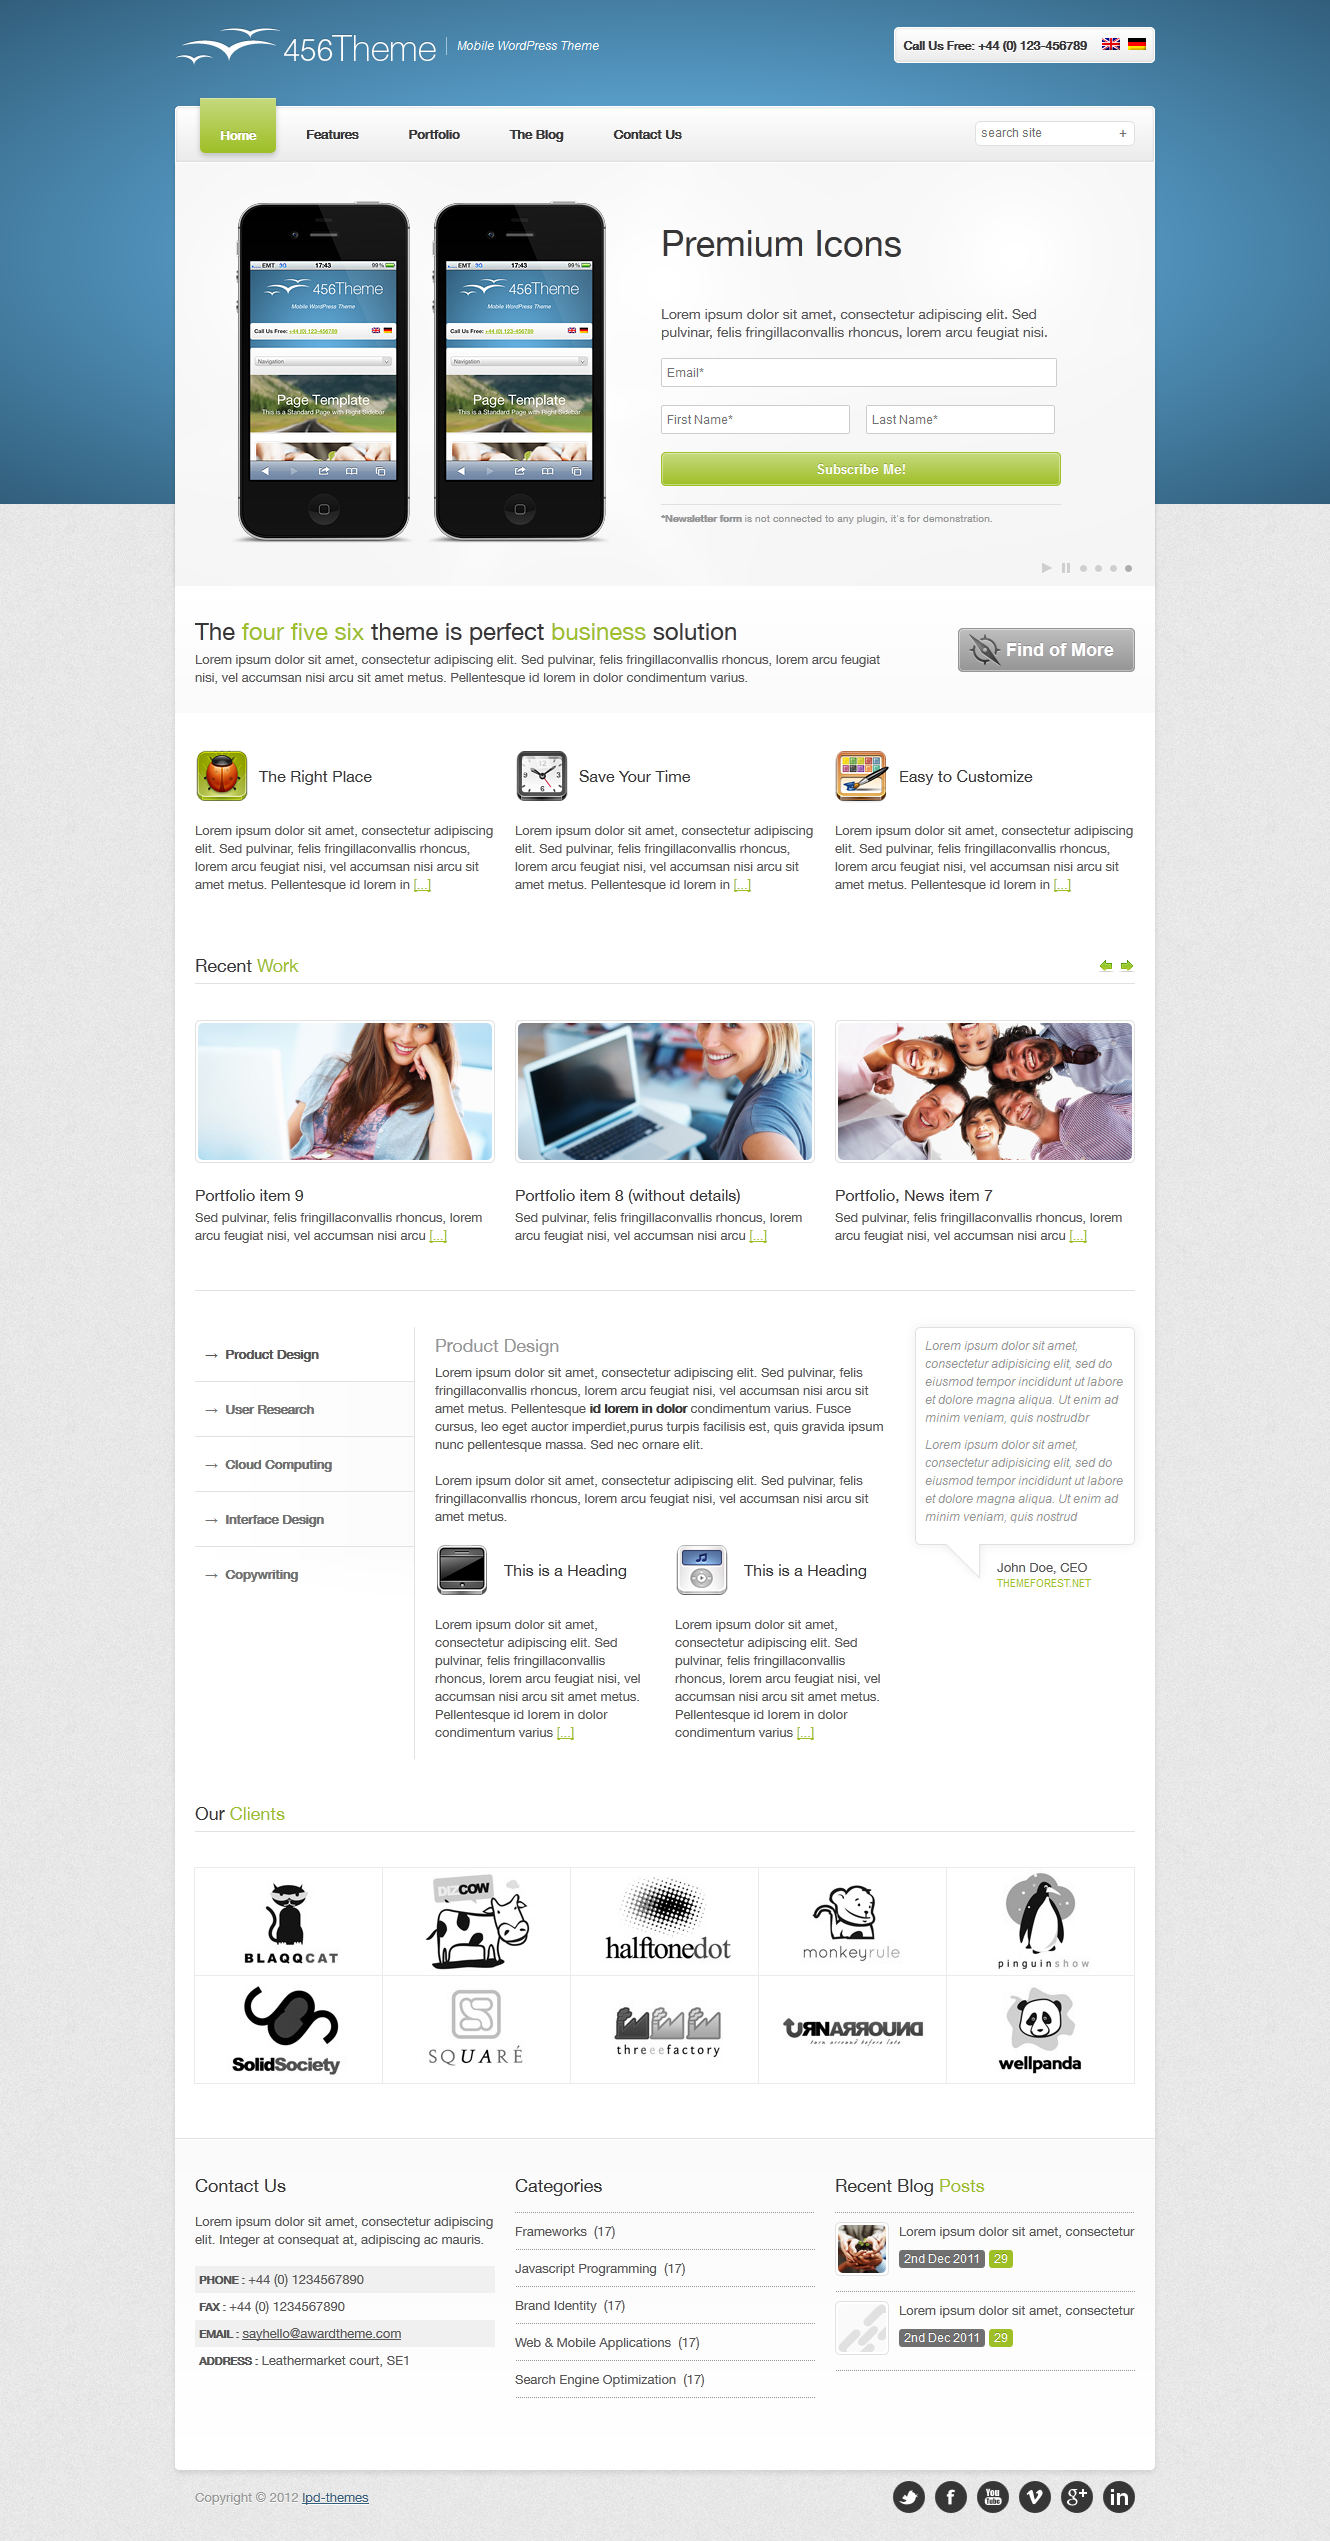 456Theme Premium Responsive Wordpress Theme - front page 2